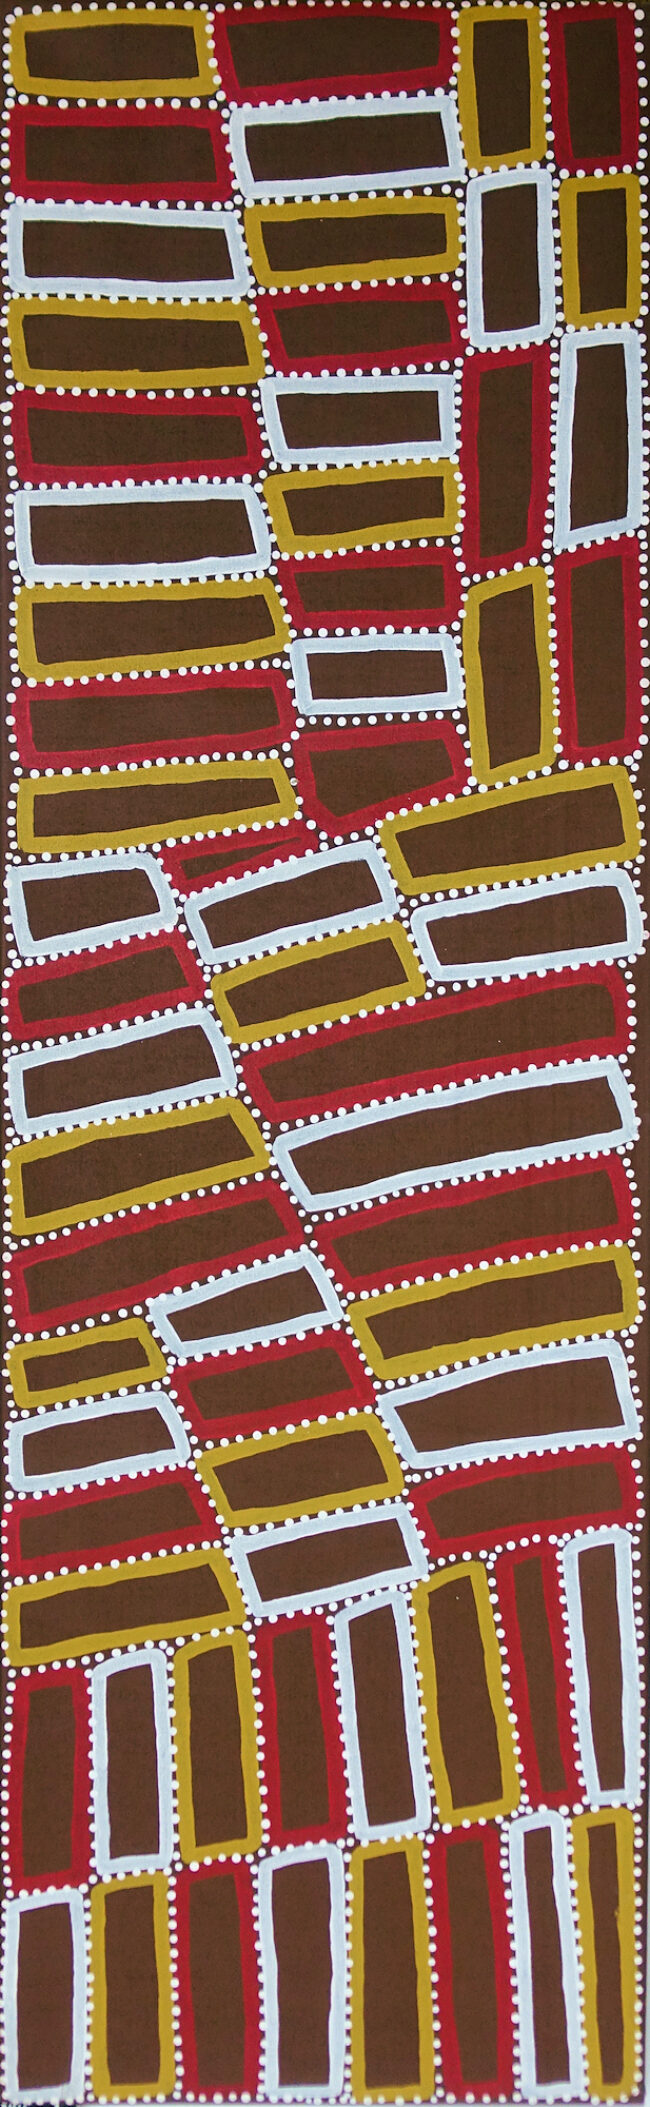 Walala Tjapaltjarri - Lake Mackay (& the Tingari Cycle) - 61 x 198 cm - Cat 9364WT